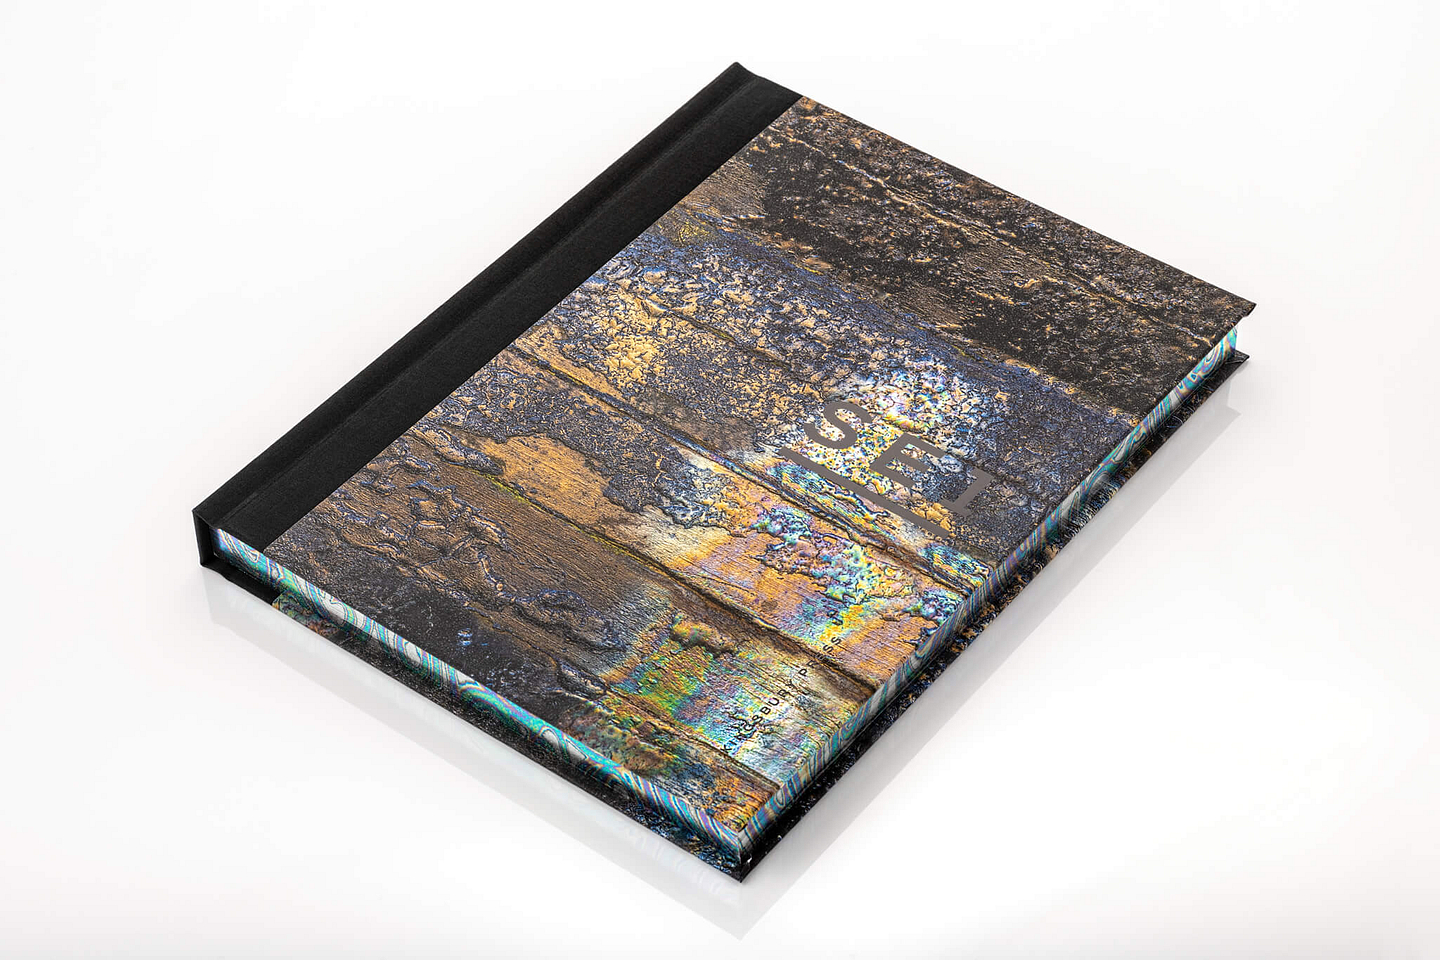 SE1 book cover and foiled edge